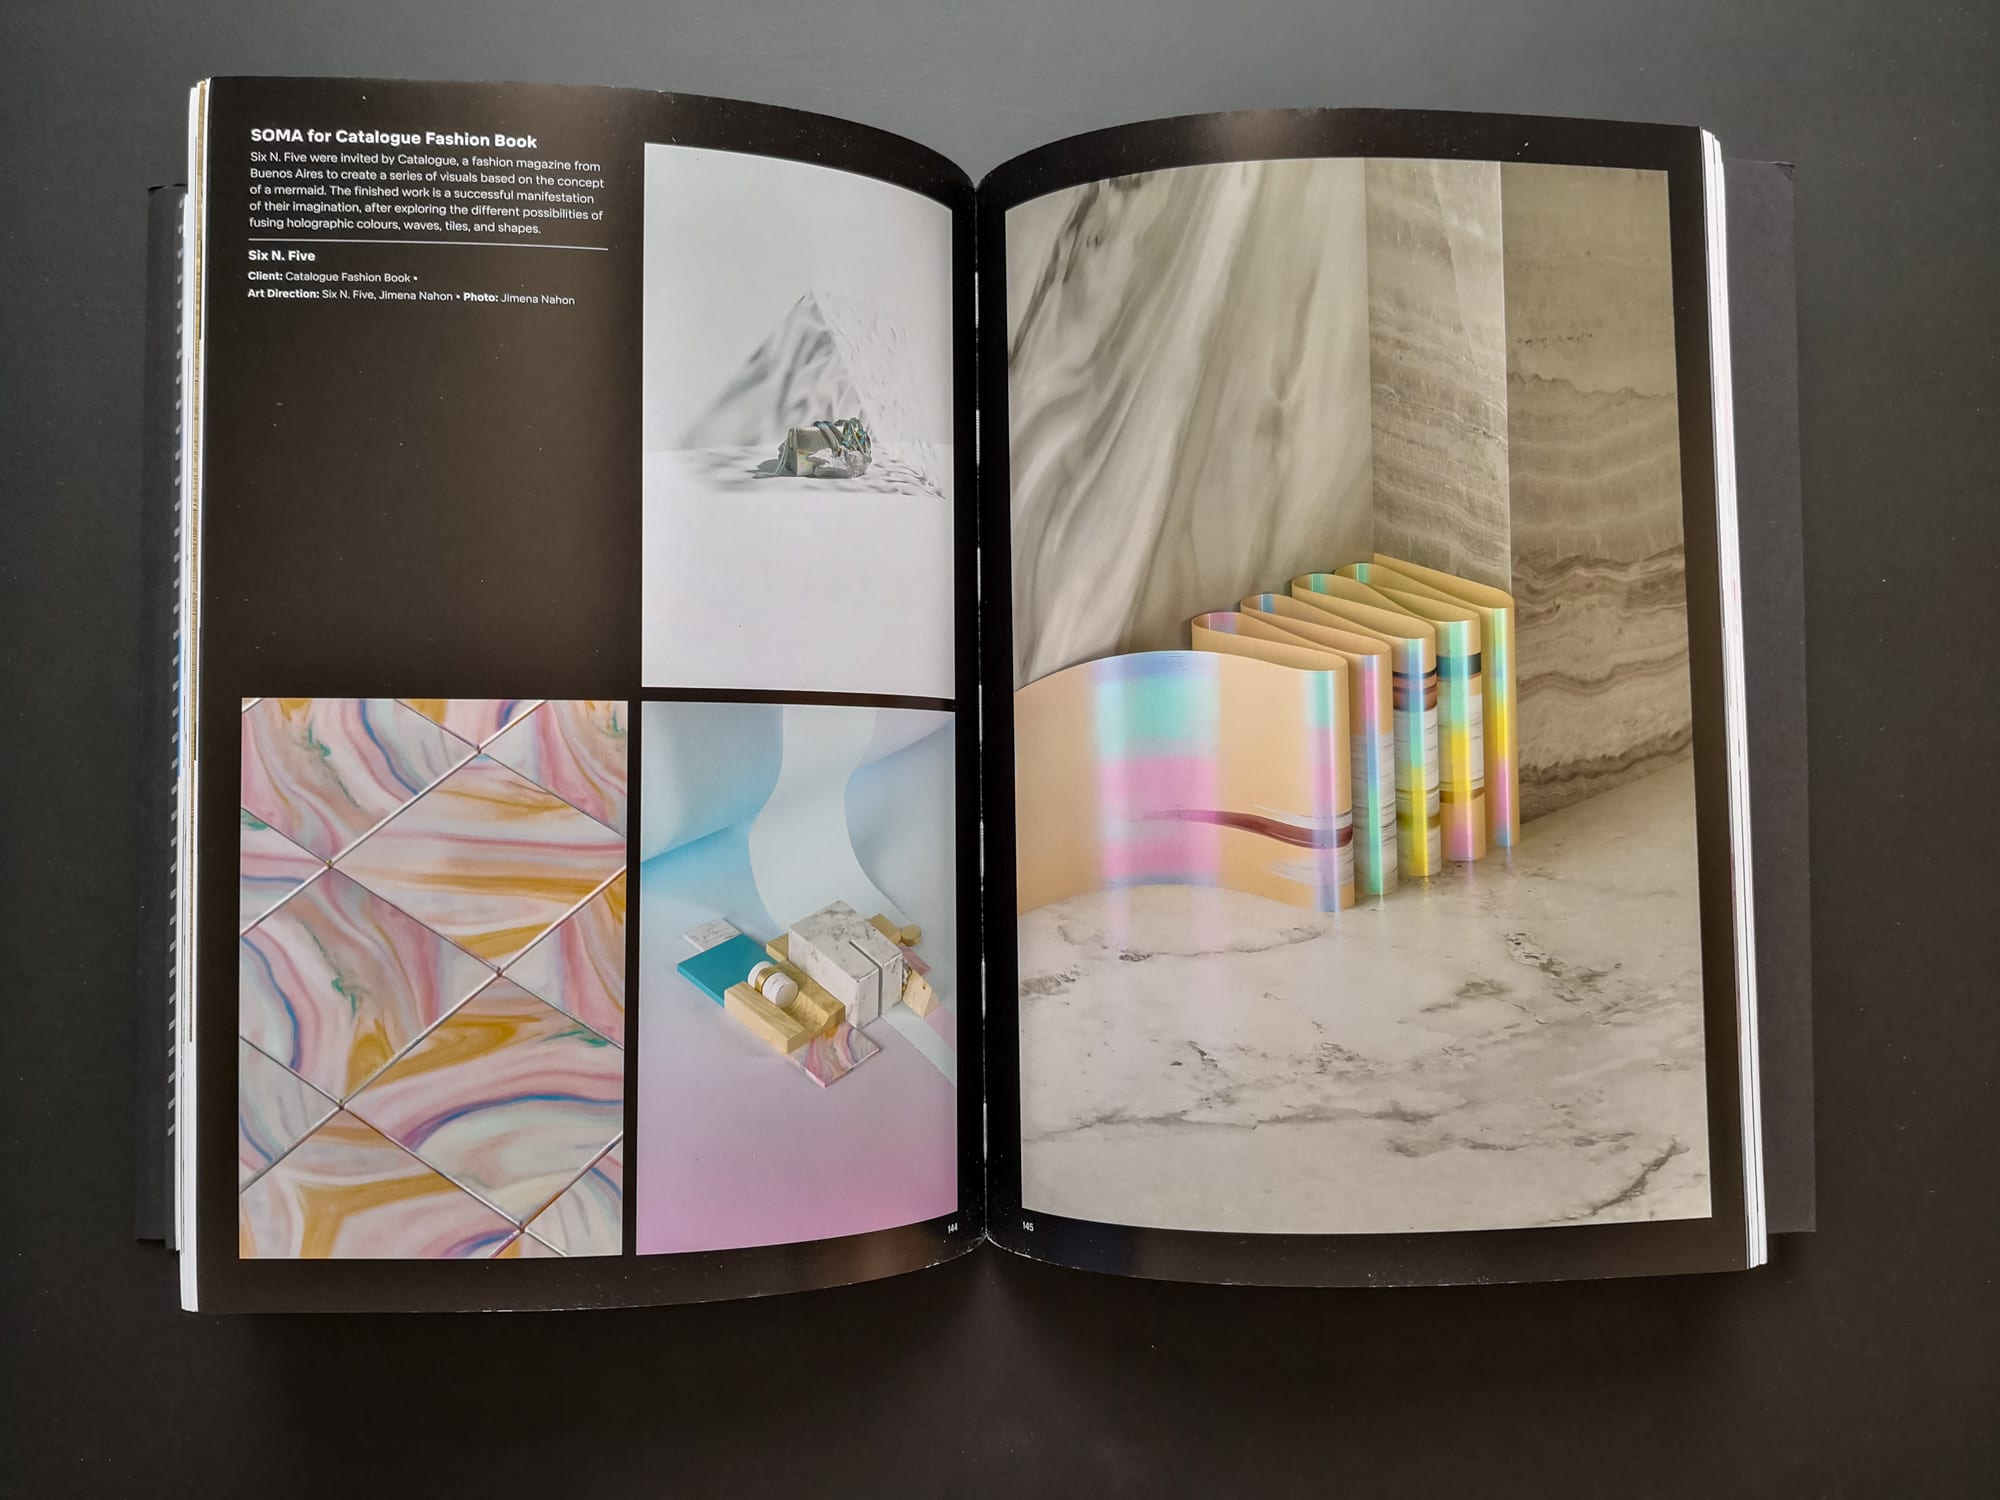 Palette 08 : Iridescent. SOMA for Catalogue Fashion Book